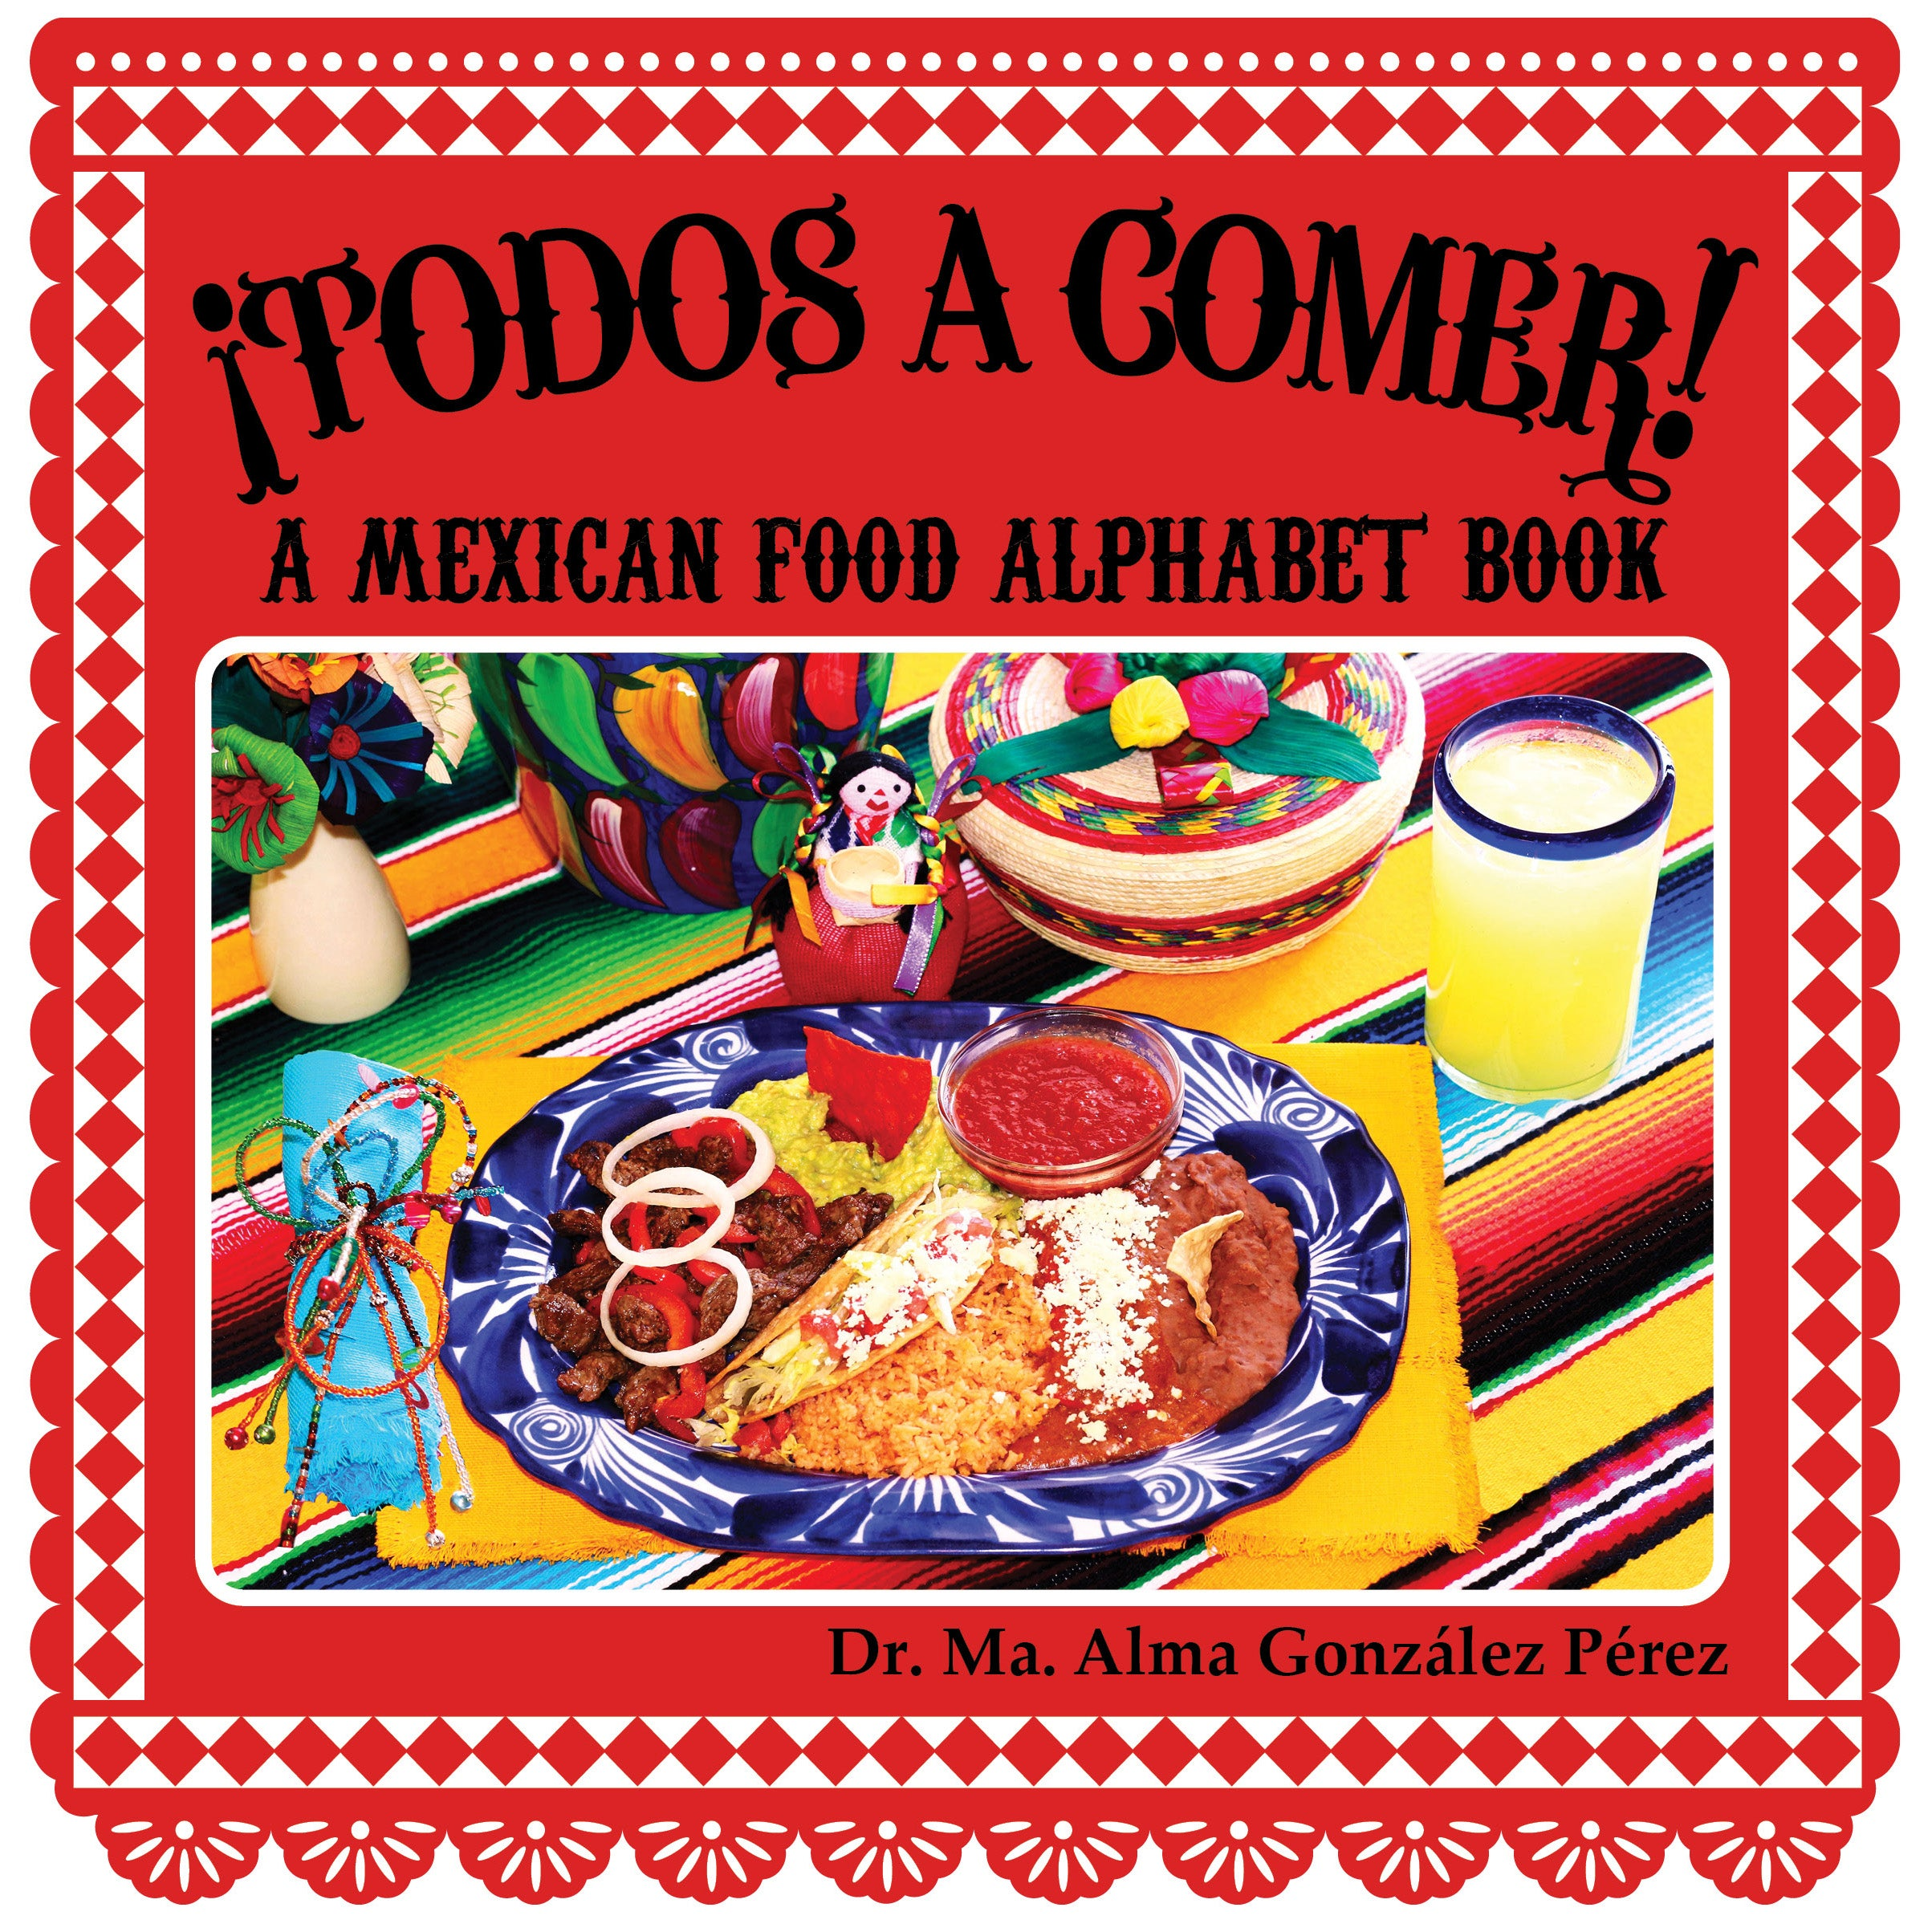 ¡Todos a comer! A Mexican Food Alphabet Book